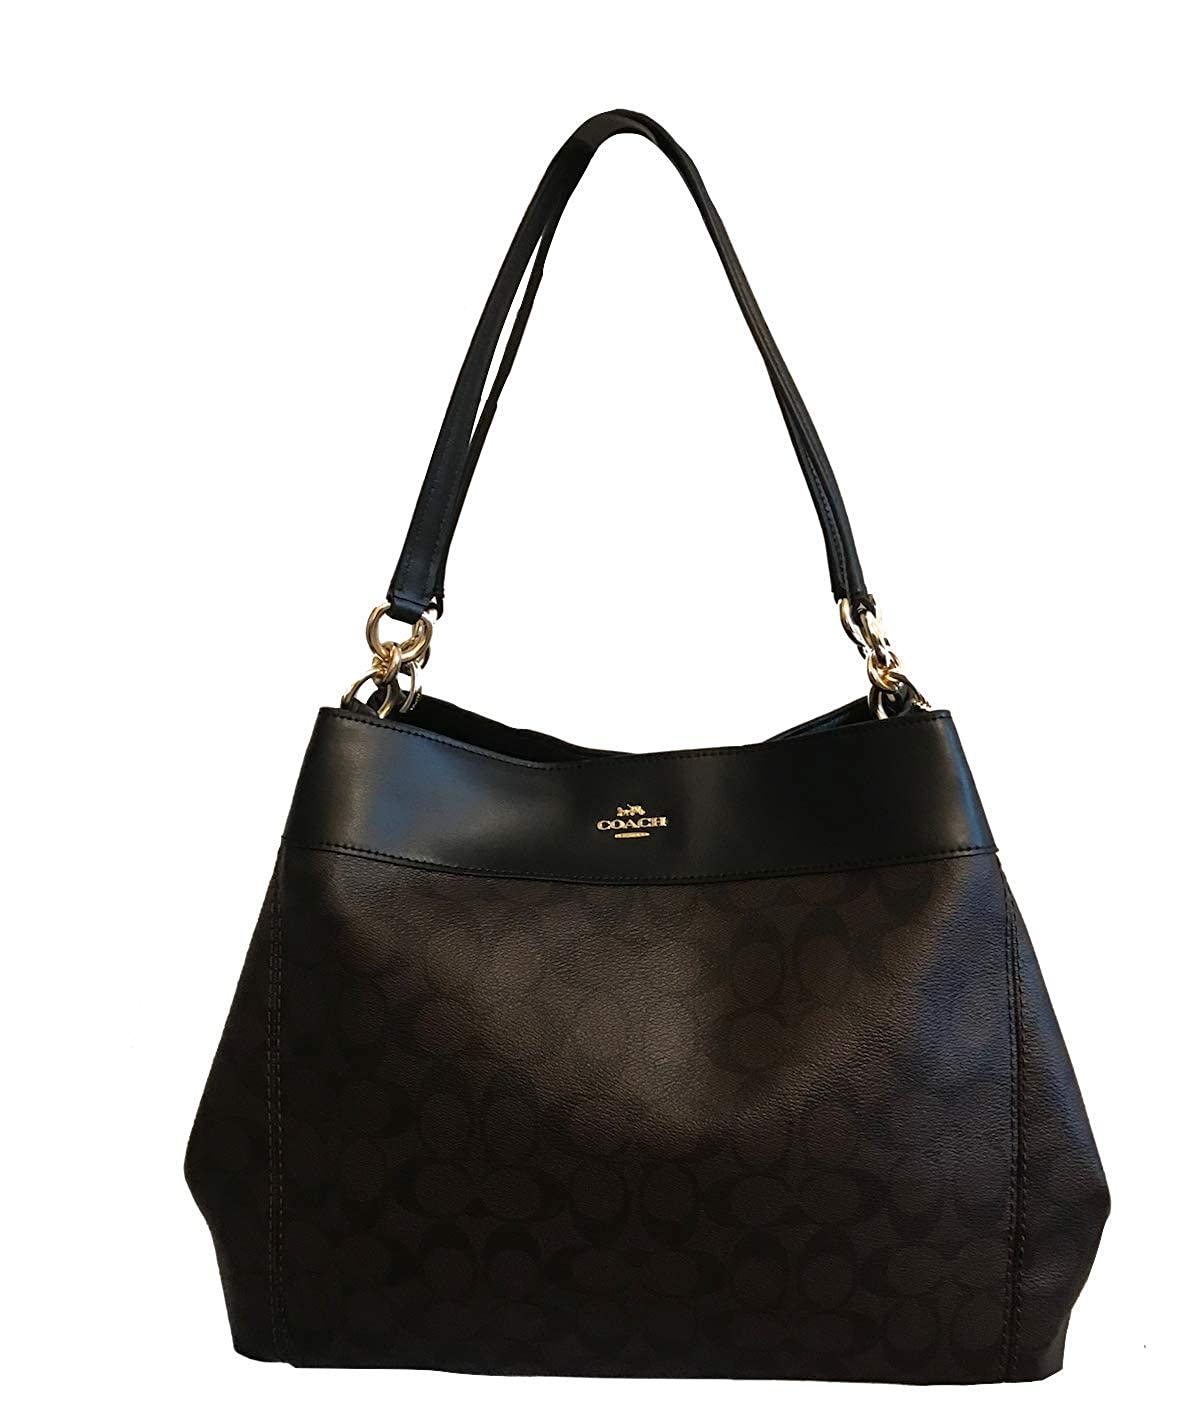 b8fcd151f3e3a Amazon.com  COACH Lexy Shoulder Bag in Signature (Brown Black)  Clothing